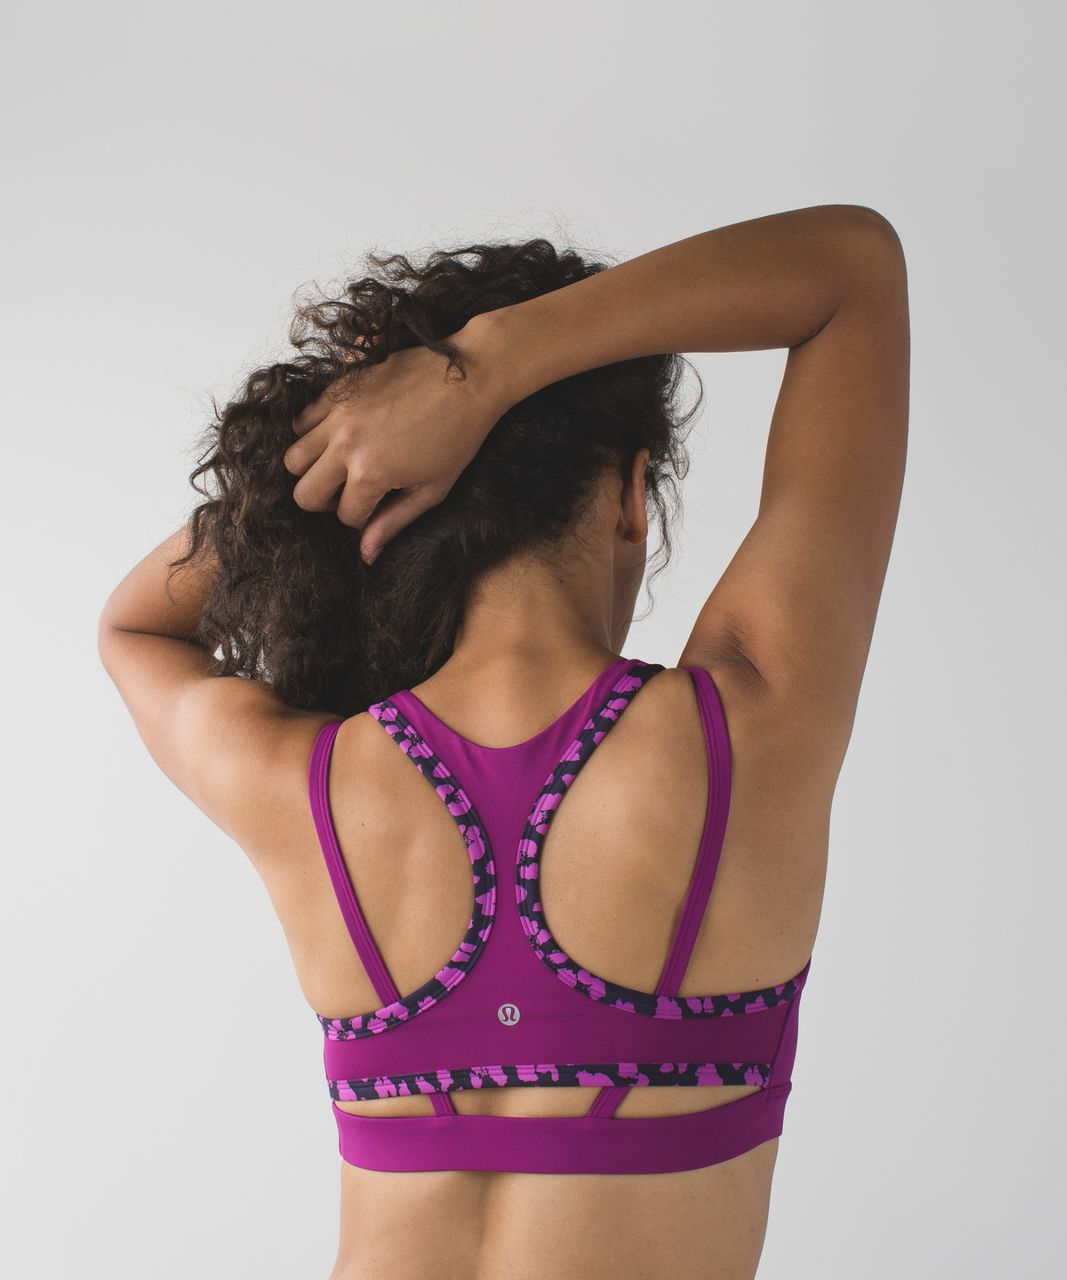 Lululemon Splendour Bra - Mini Cherry Cheetah Ultra Violet Naval Blue / Regal Plum